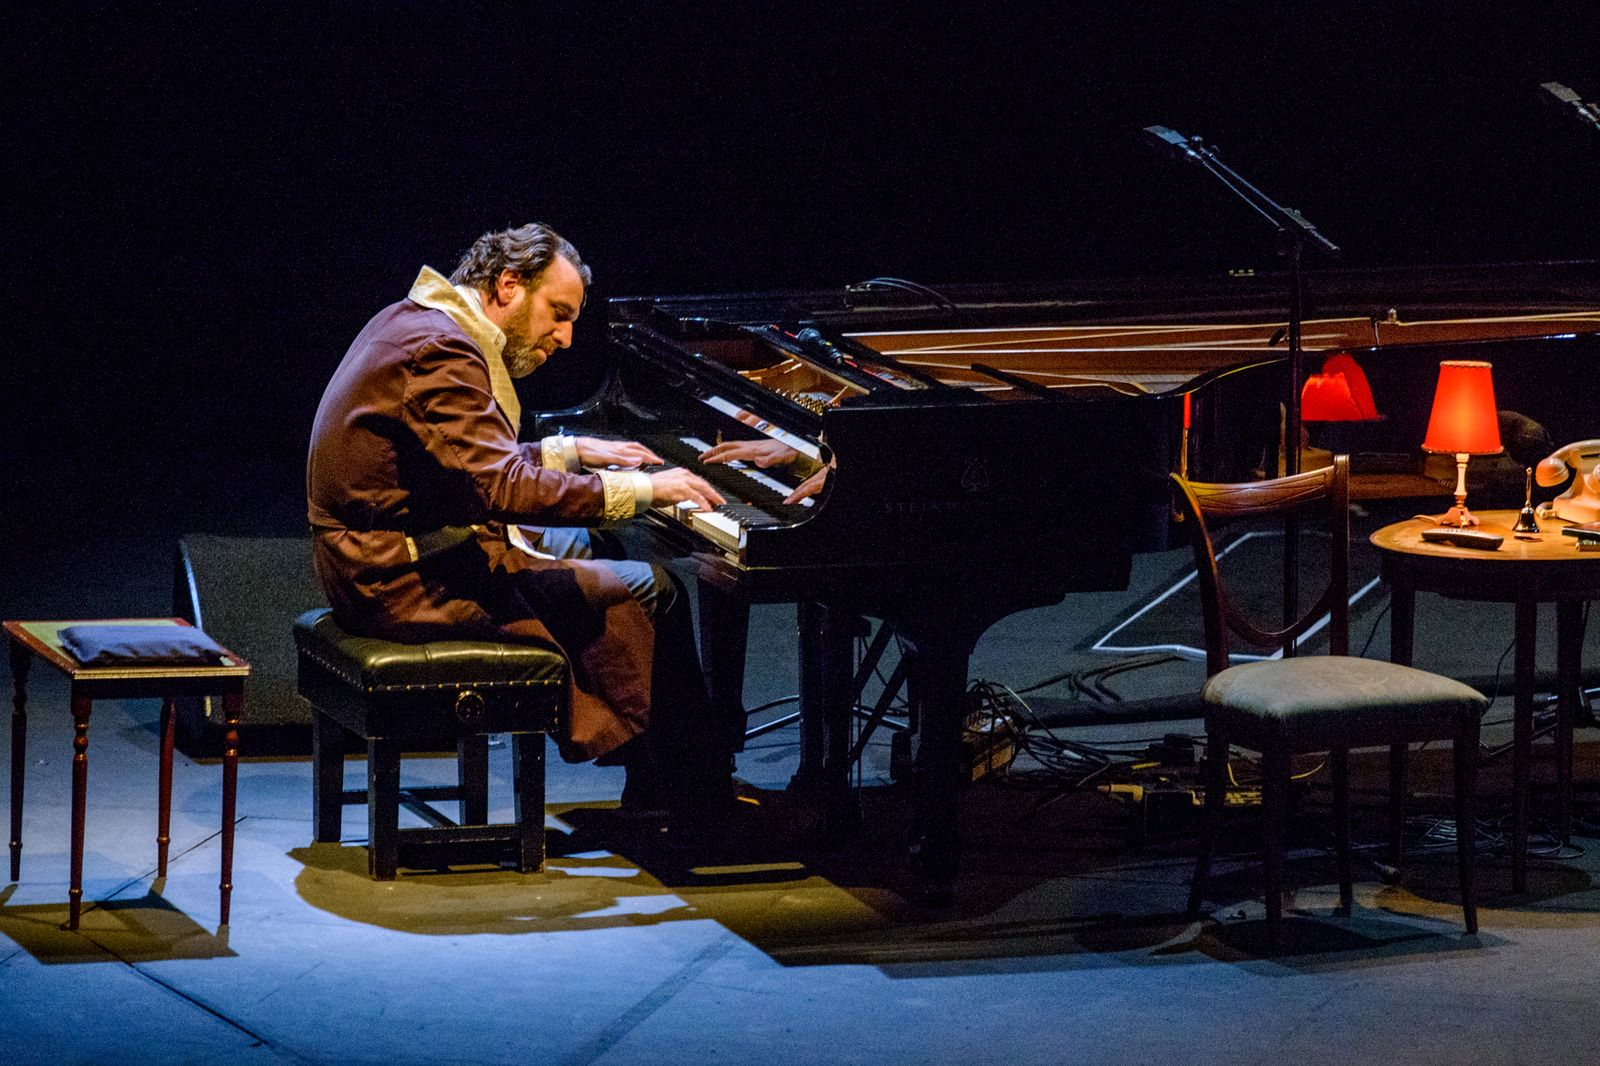 Jarvis Cocker and Chilly Gonzales Perform At The Barbican Centre